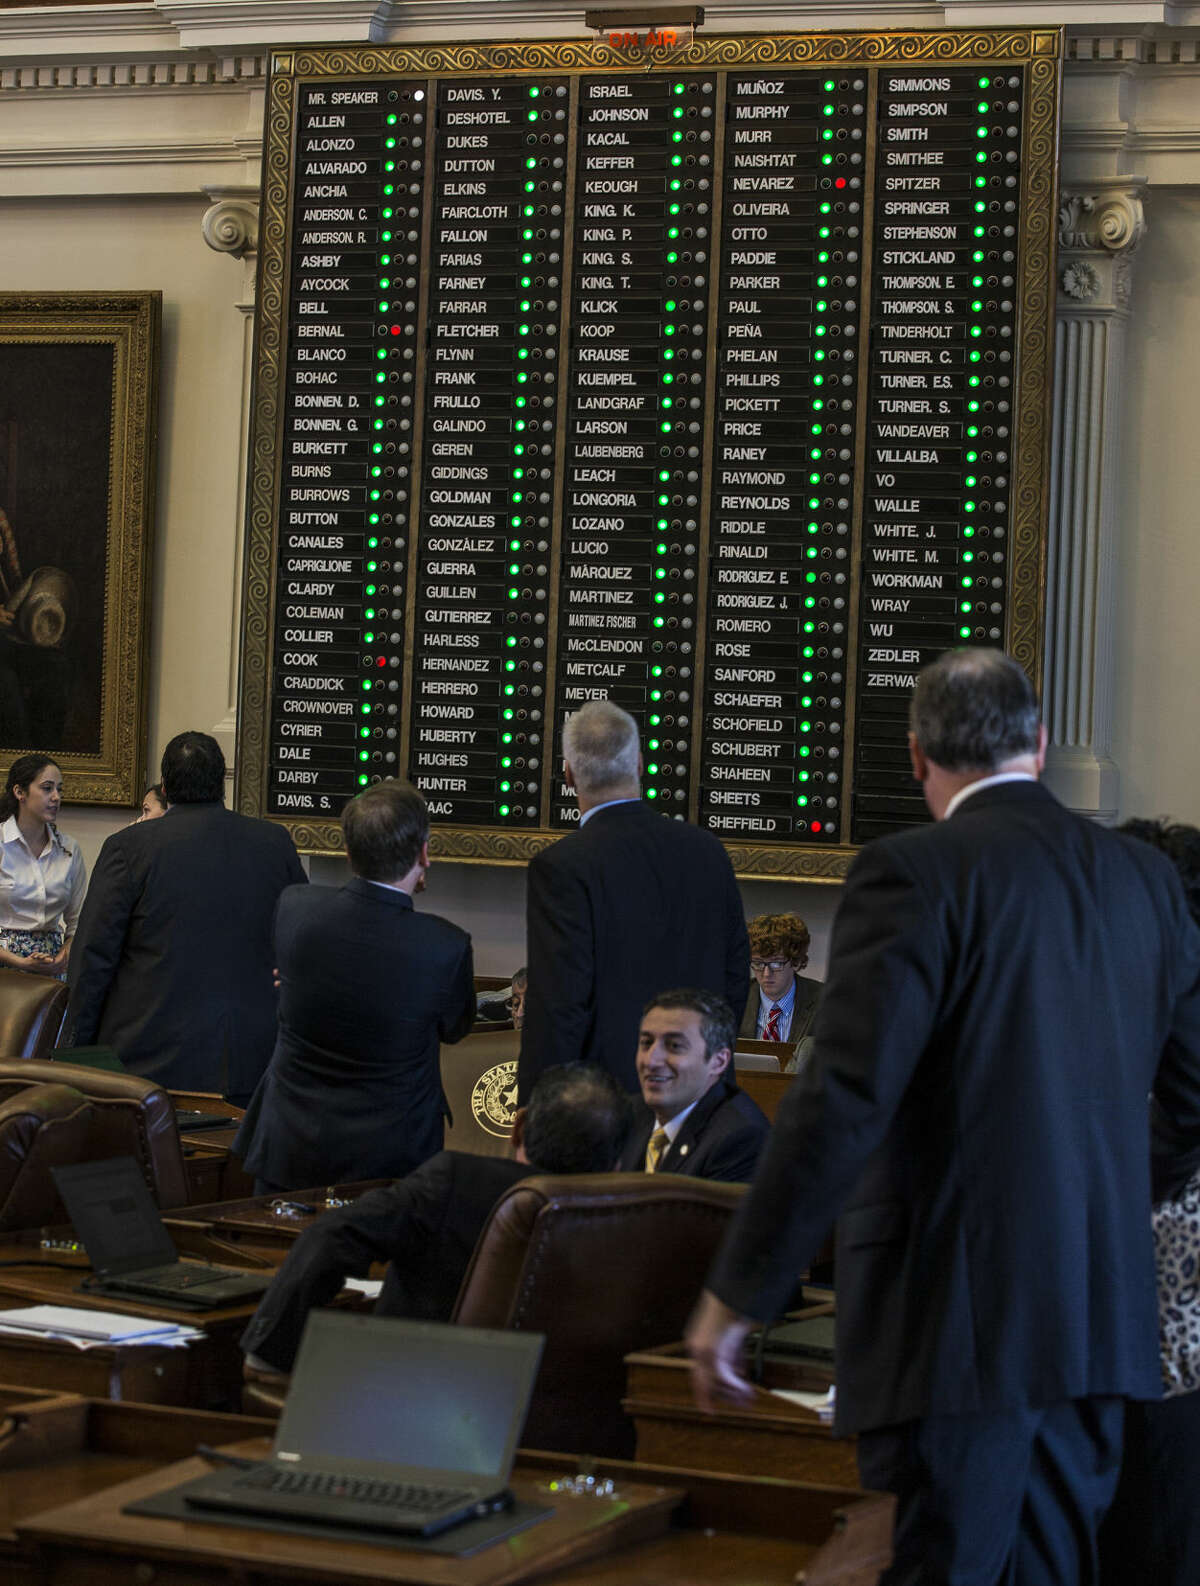 Texas House of Representatives members watch the voting board as votes is counted on a bill, a statewide ban on texting while driving, on Wednesday, March 25, 2015, in Austin, Texas. (AP Photo/Austin American-Statesman, Ricardo B. Brazziell) The bill overwhelmingly passed the Texas House, but it died in the Texas Senate before it could be brought to a floor vote. Midland City Council Members Scott Dufford and J. Ross Lacy hope to have better luck with an ordinance banning texting while driving in Midland.